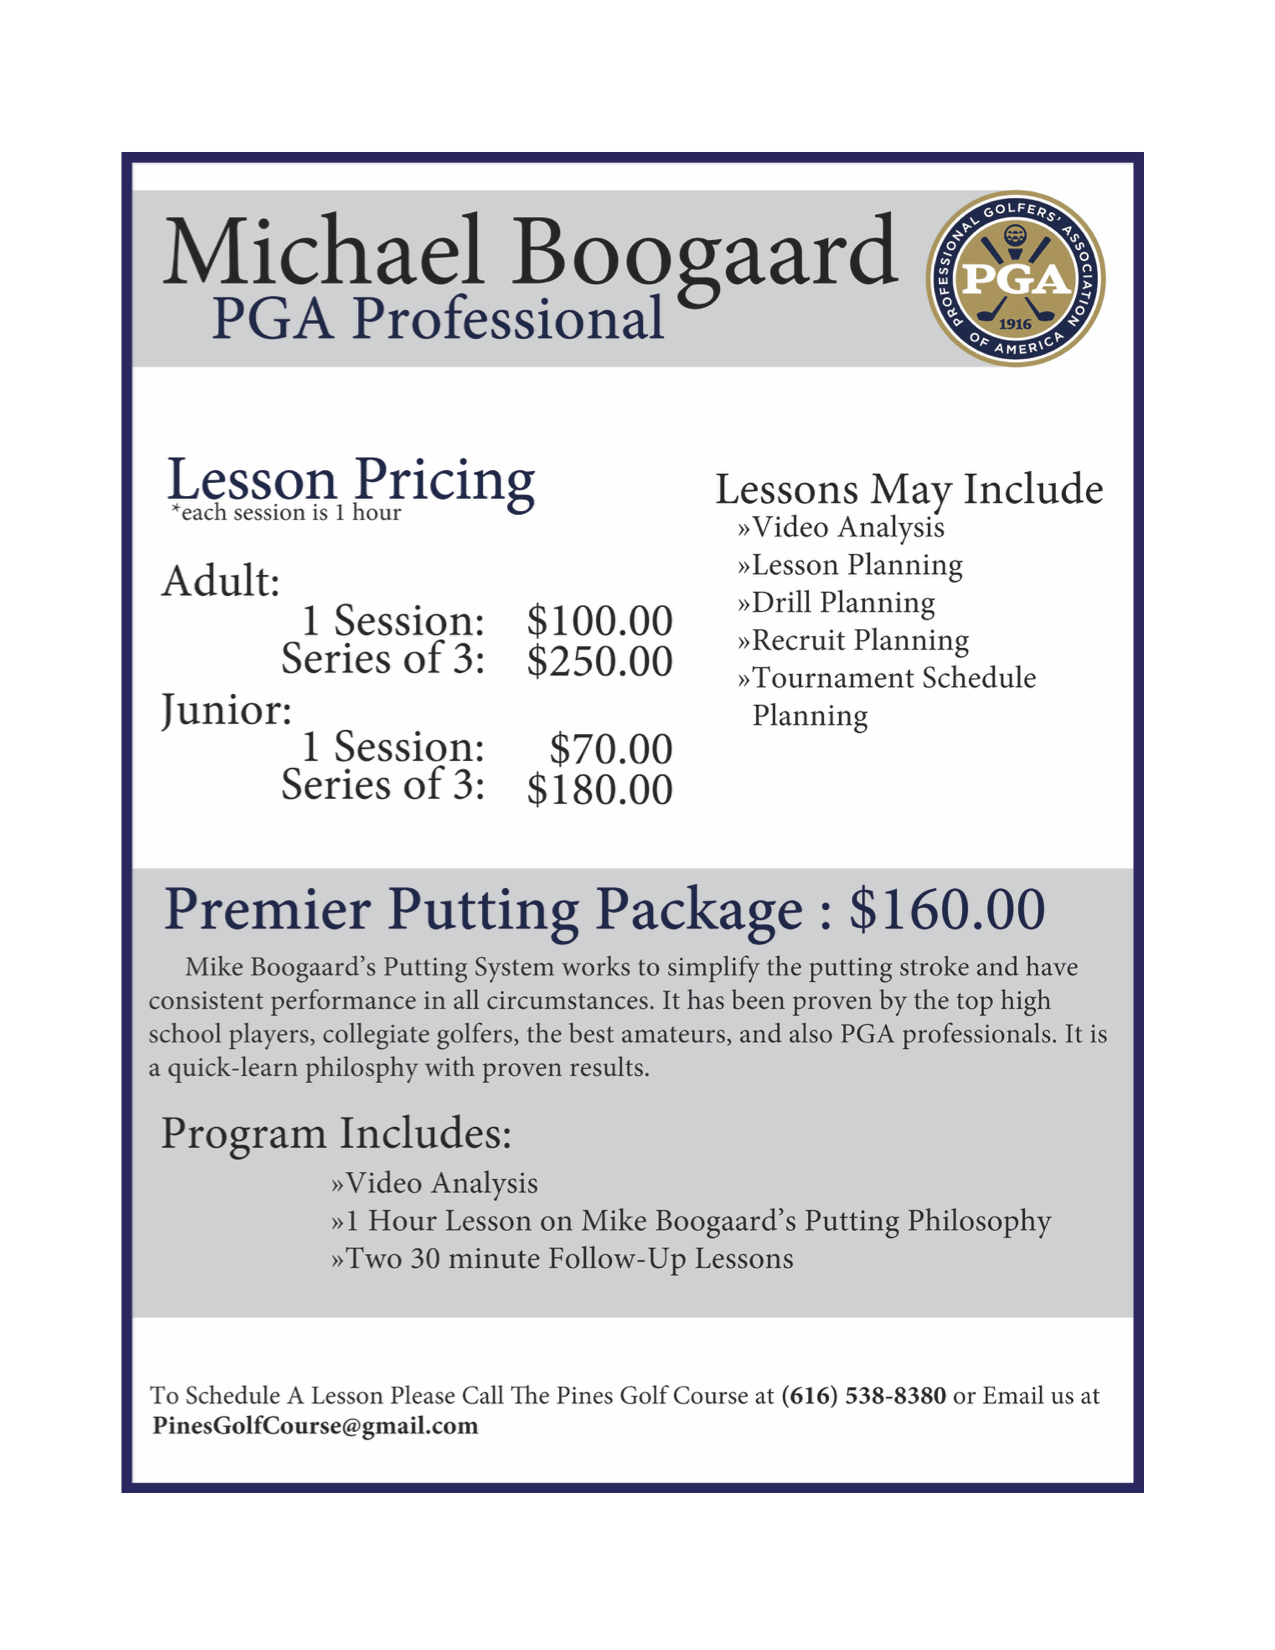 Mike Boogaard Lessons 2018